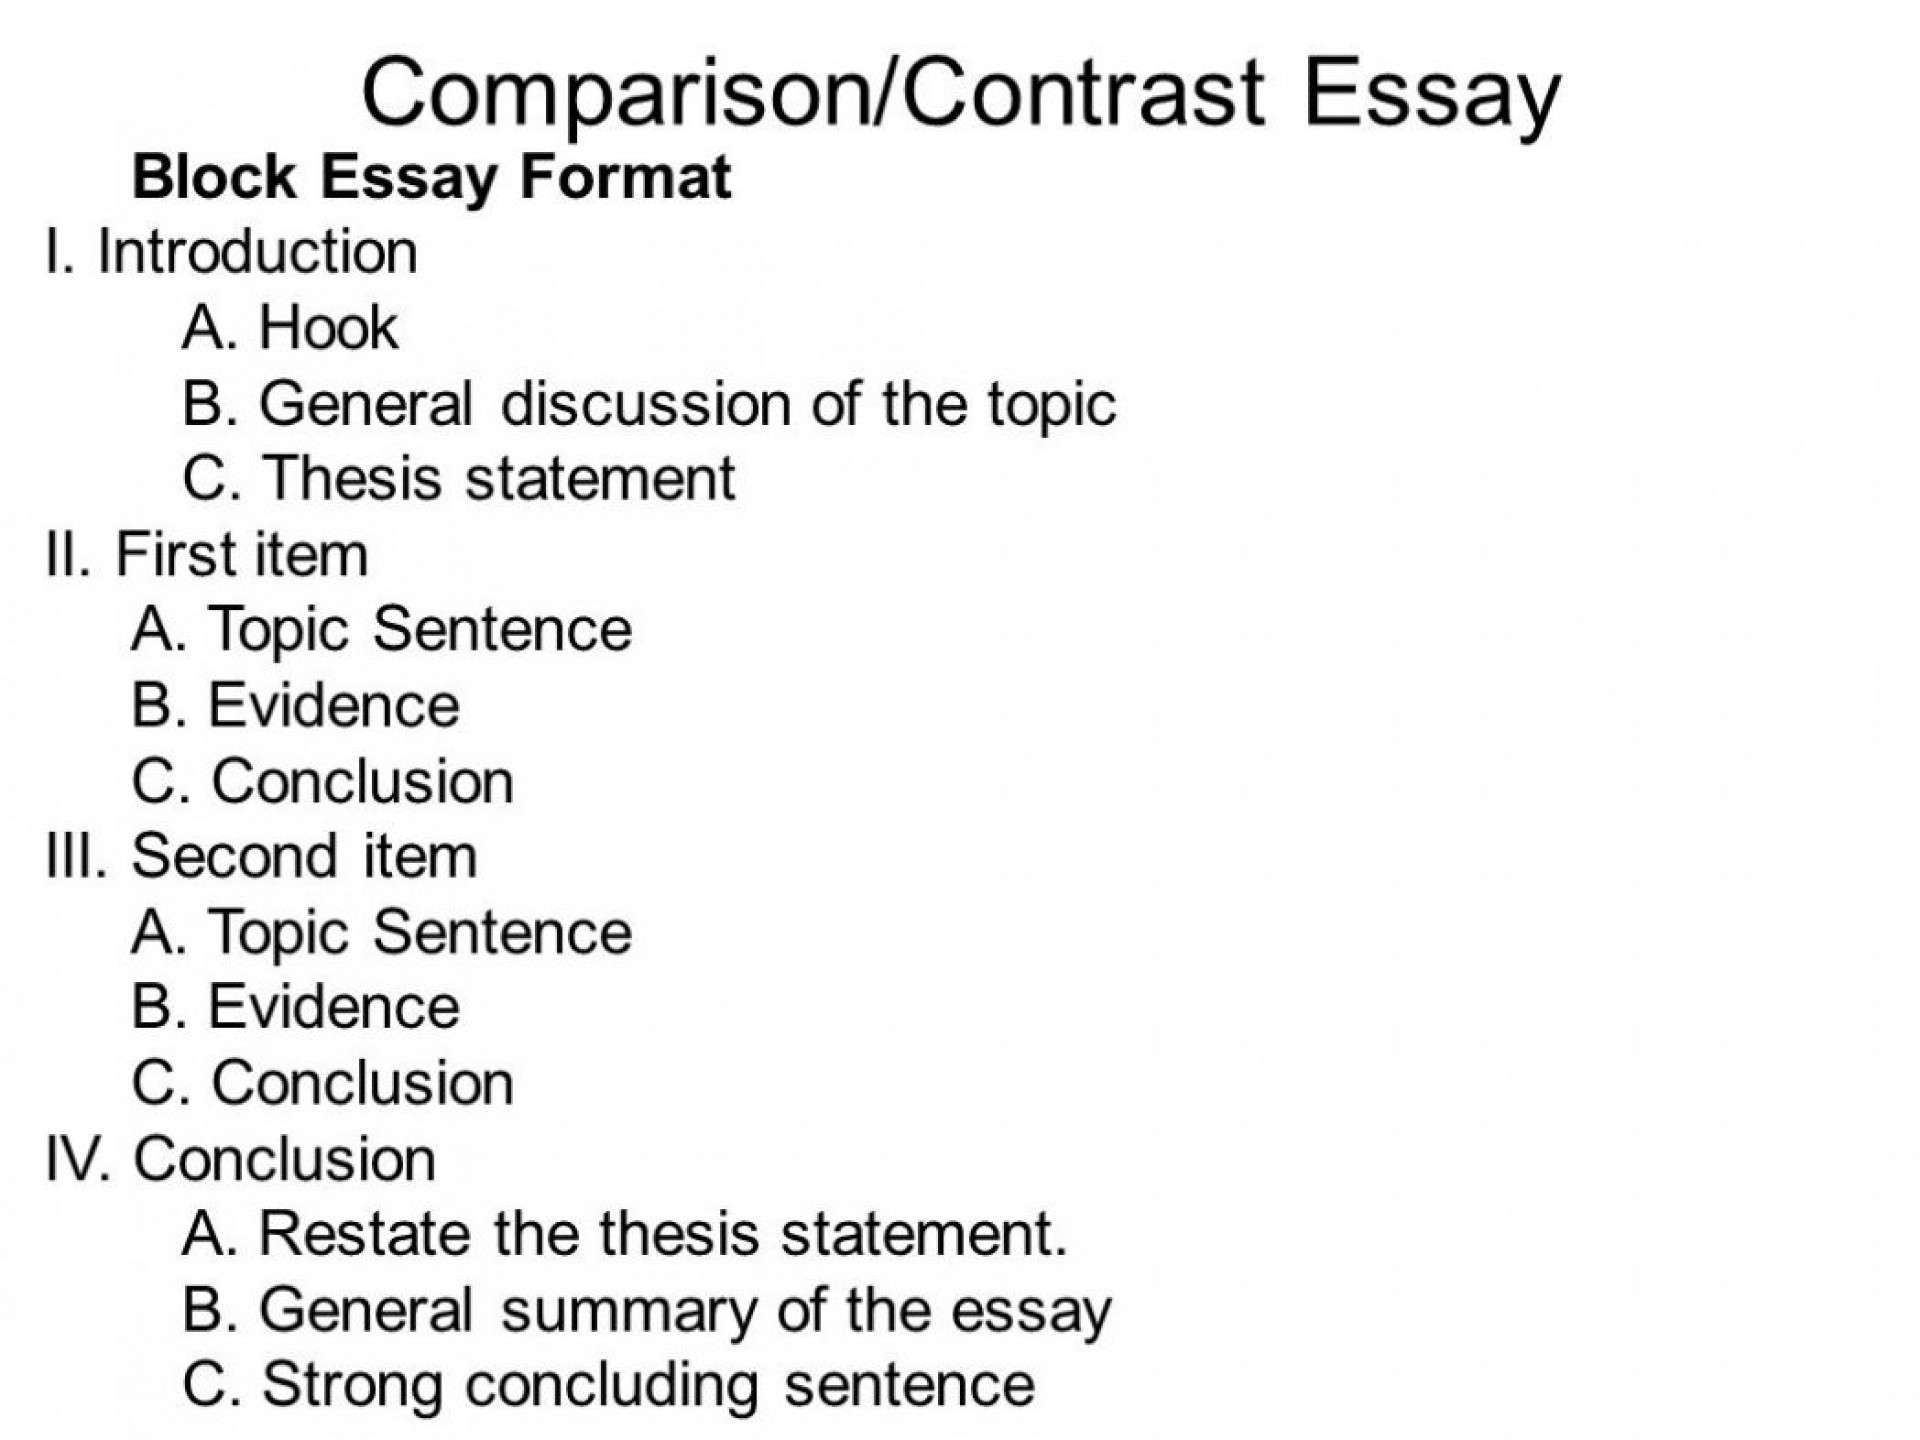 006 Essay Example Introduction Outline Thesis For Compare Contrast Writing Portfolio With Mr Butner Informative Sli Extended Structure Paragraph Argumentative Stupendous 5 1920